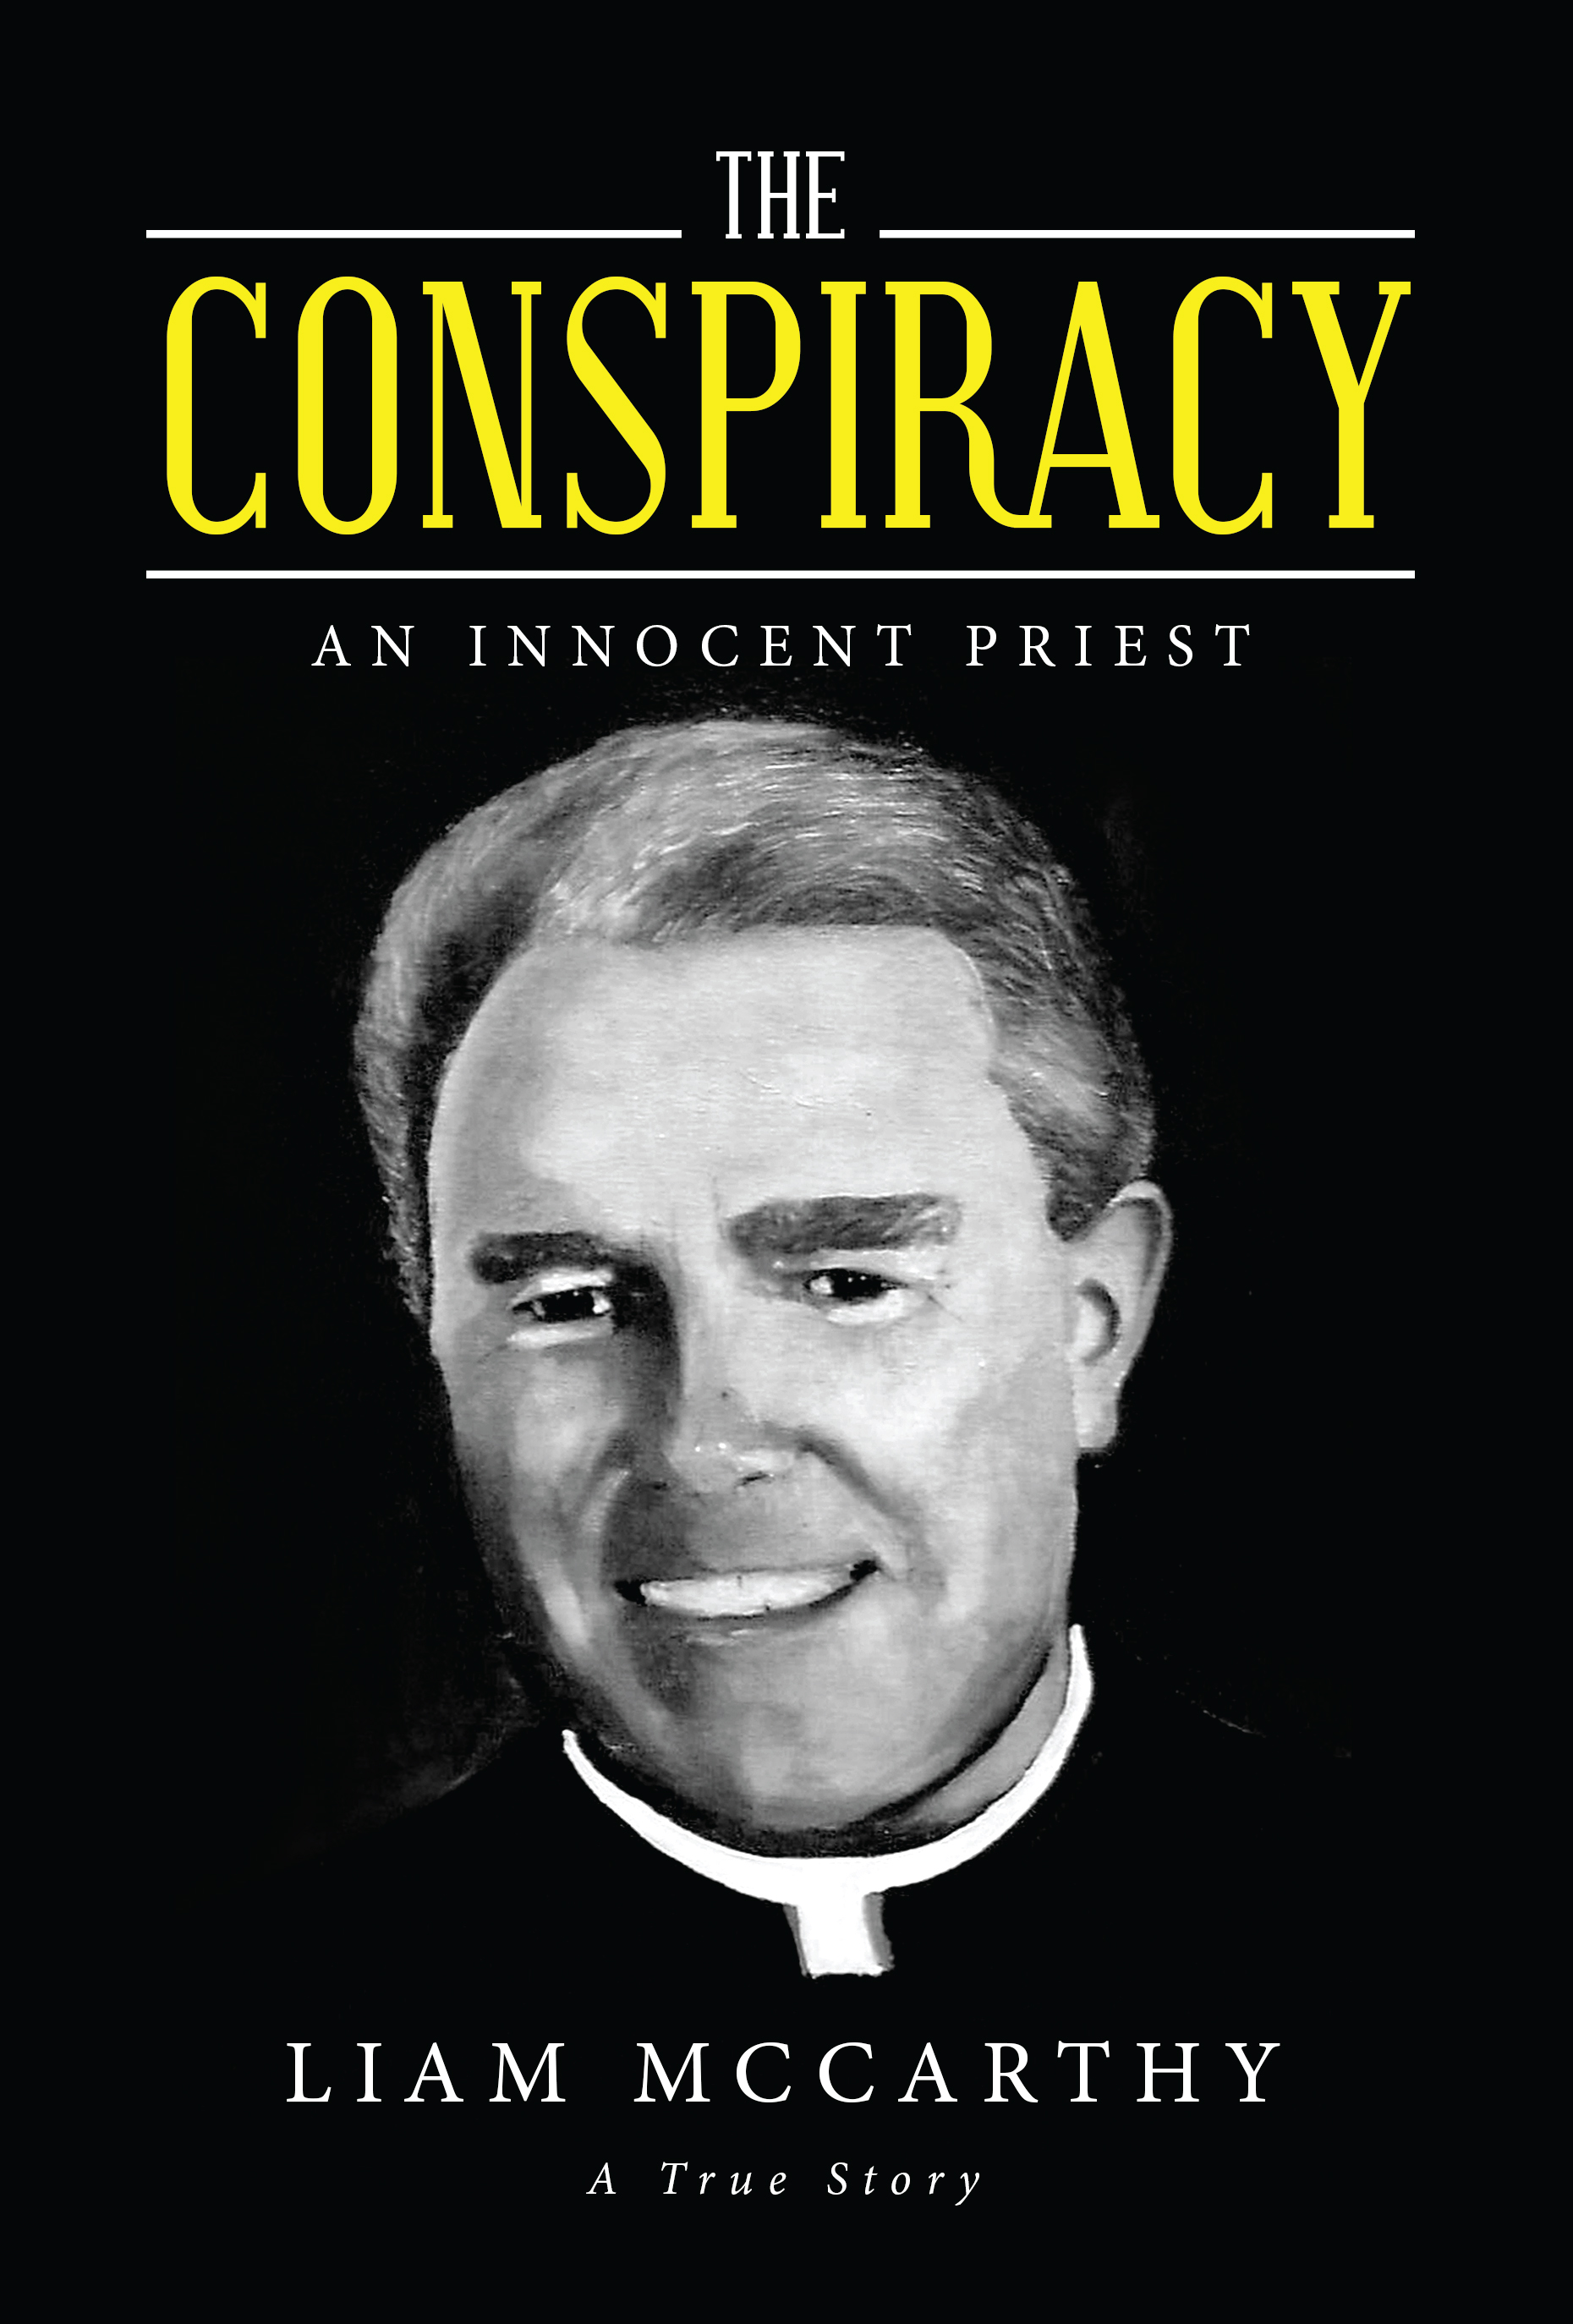 The Conspiracy - An Innocent Priest by Liam McCarthy Available on Amazon